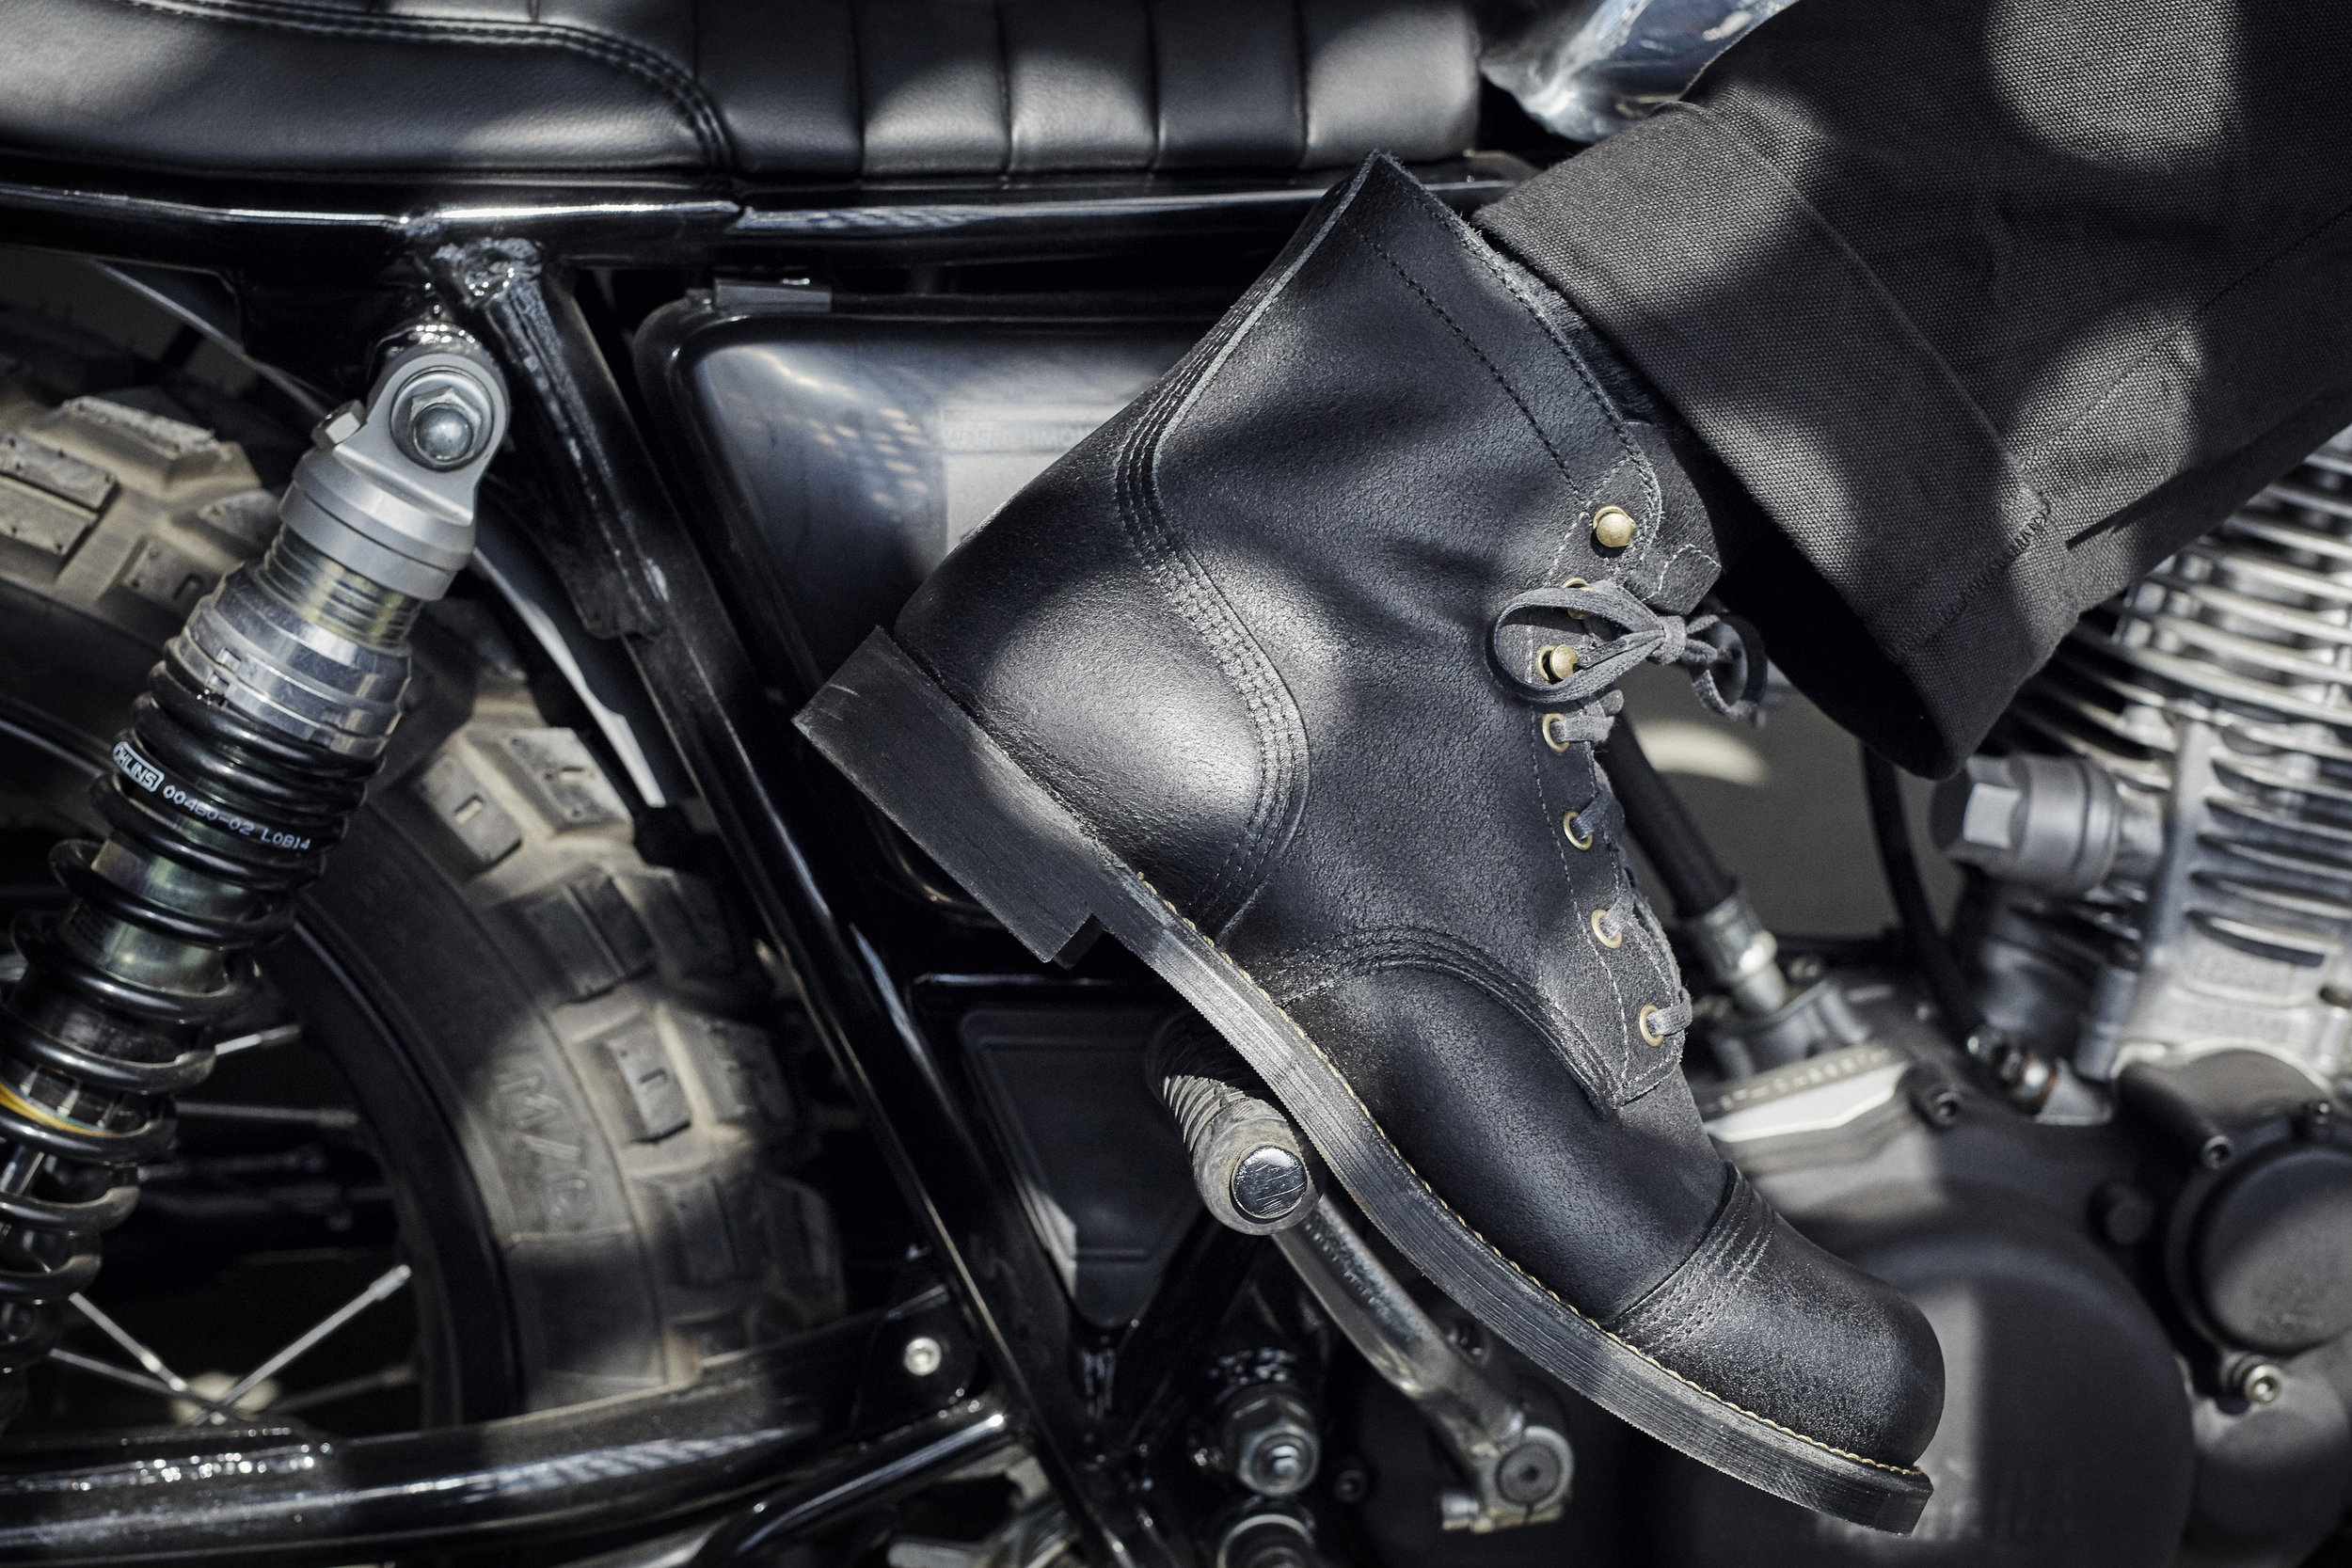 In 2015 we collaborated with Red Wing Heritage on the design of a limited edition Wrenchmonkees Iron Ranger no. 4545, which merge Scandinavian functionality and American craftsmanship. The boot got a clean and simple design and is equipped with brass eyelets and speed hooks reflecting the brass details that are often seen on the Wrenchmonkees bikes.